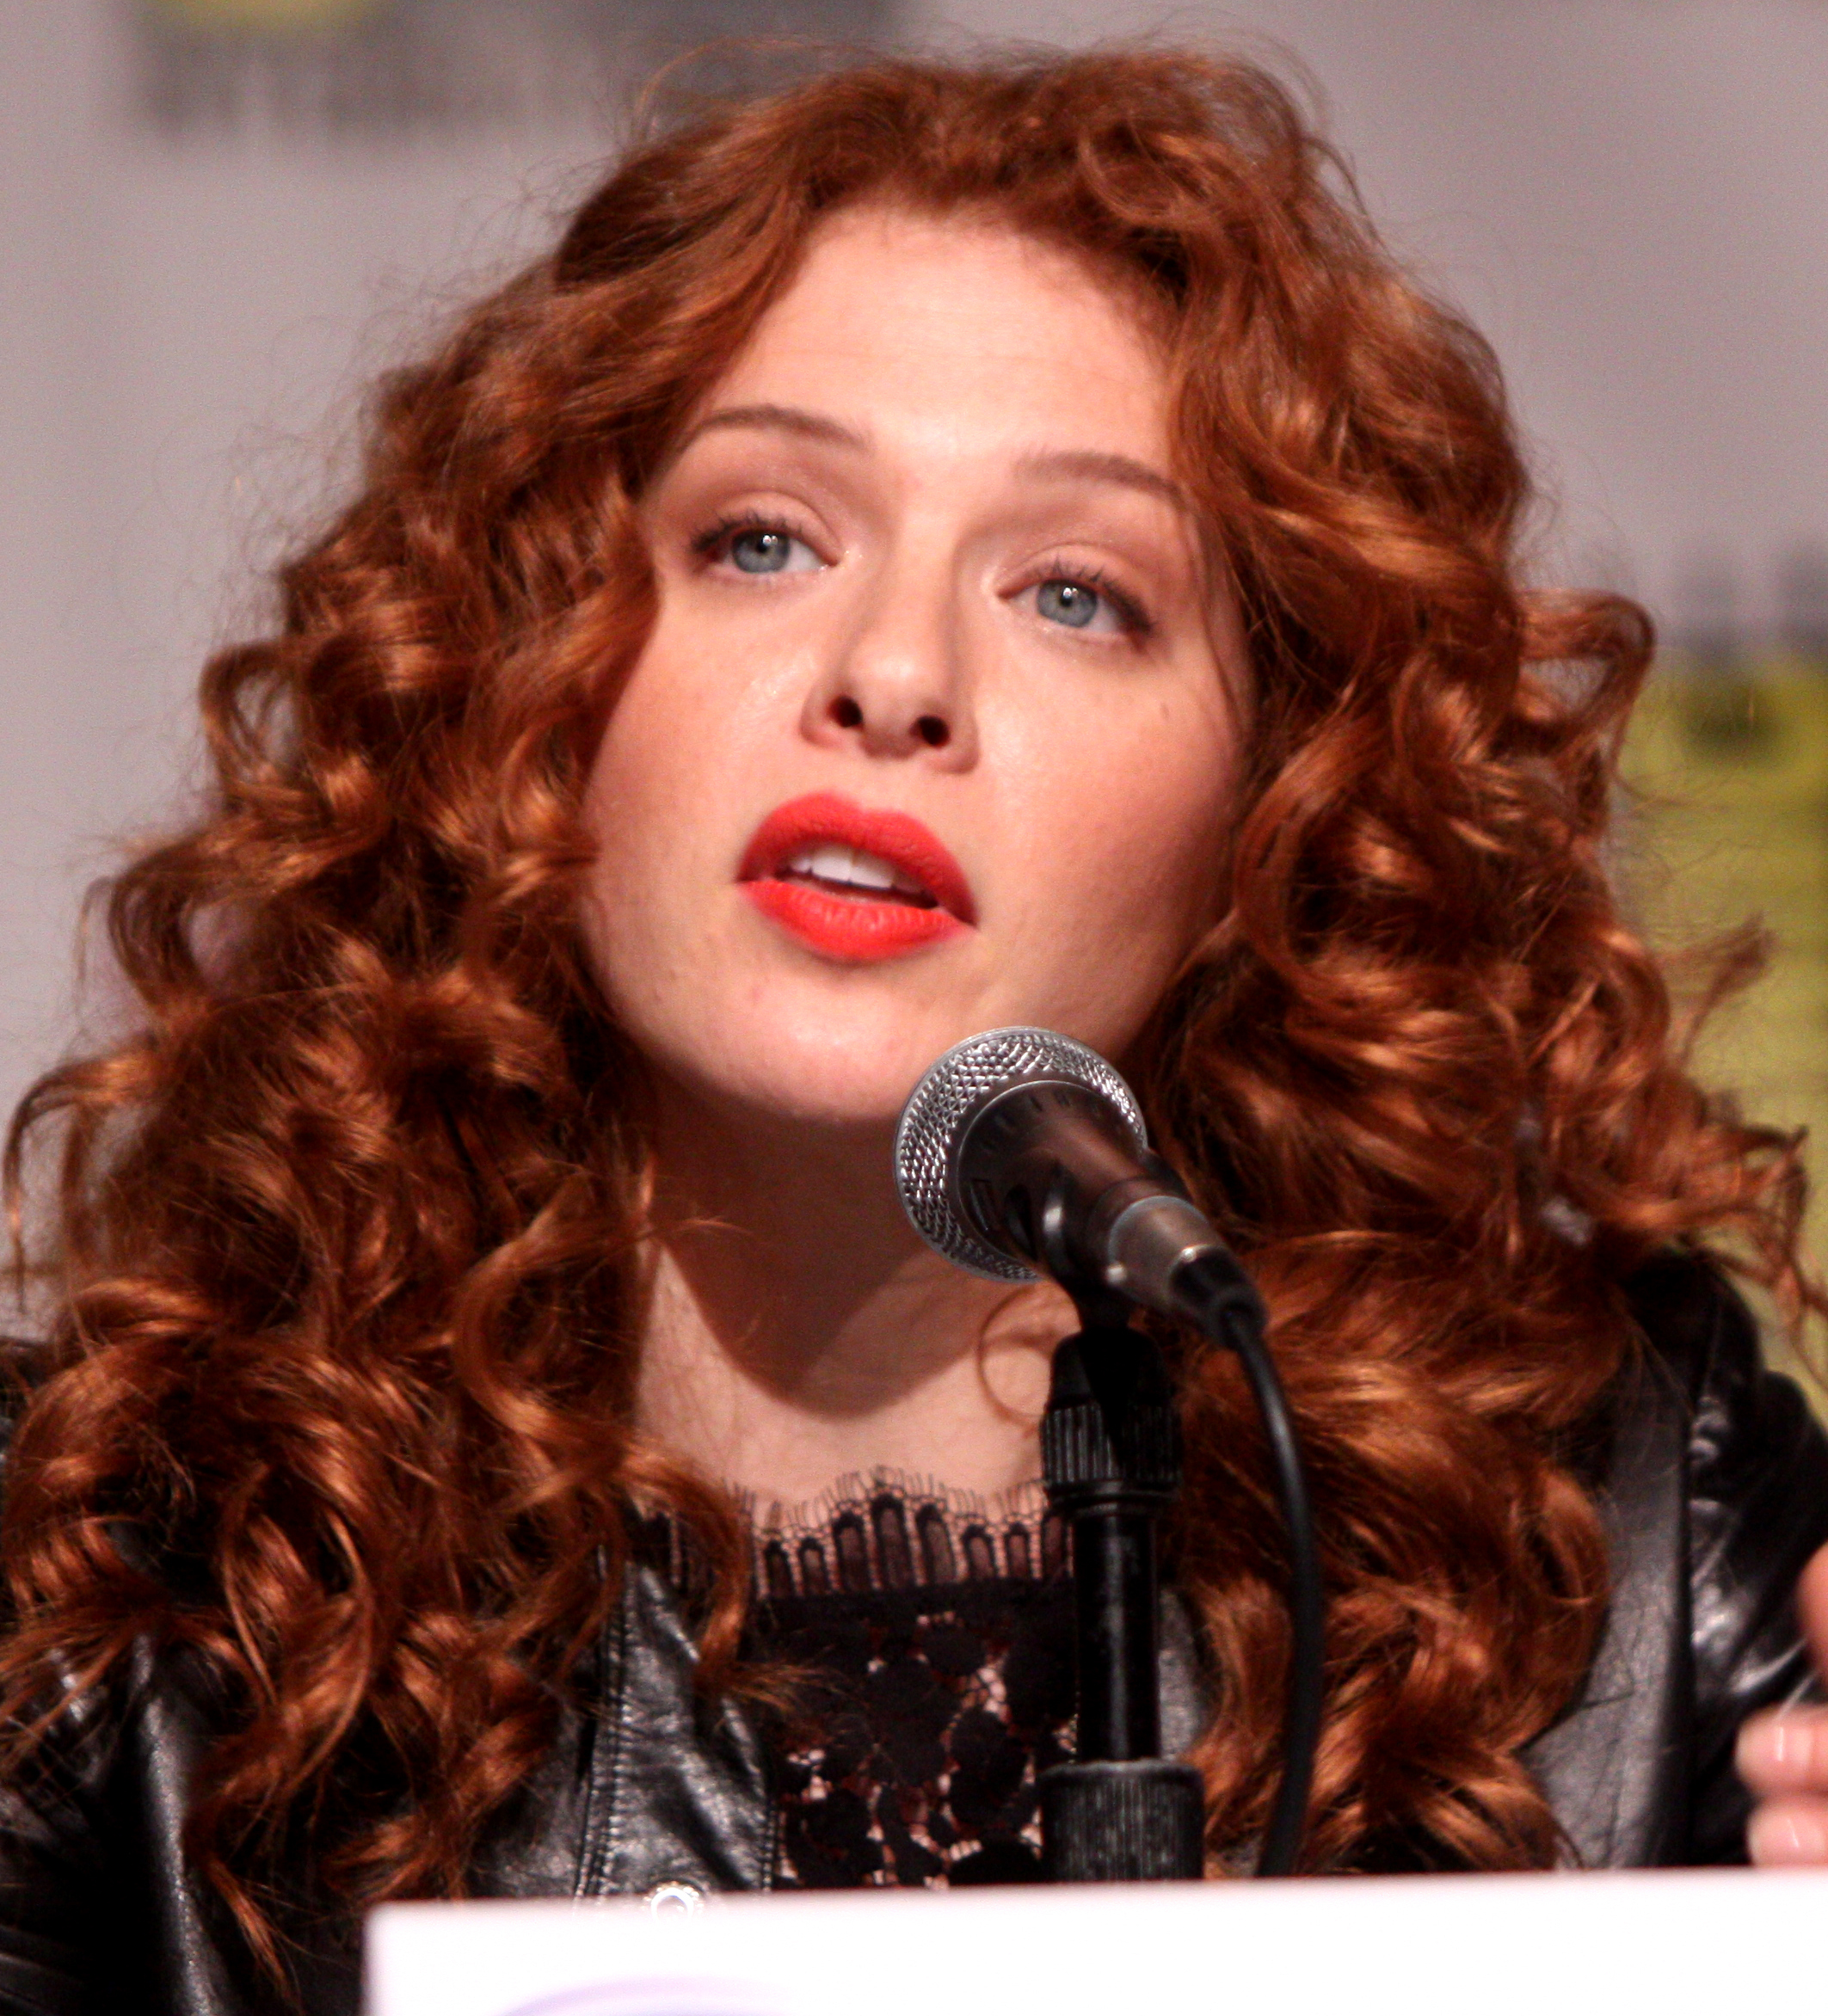 The 38-year old daughter of father Jean Lefevre and mother Kate Lefevre, 168 cm tall Rachelle Lefevre in 2017 photo